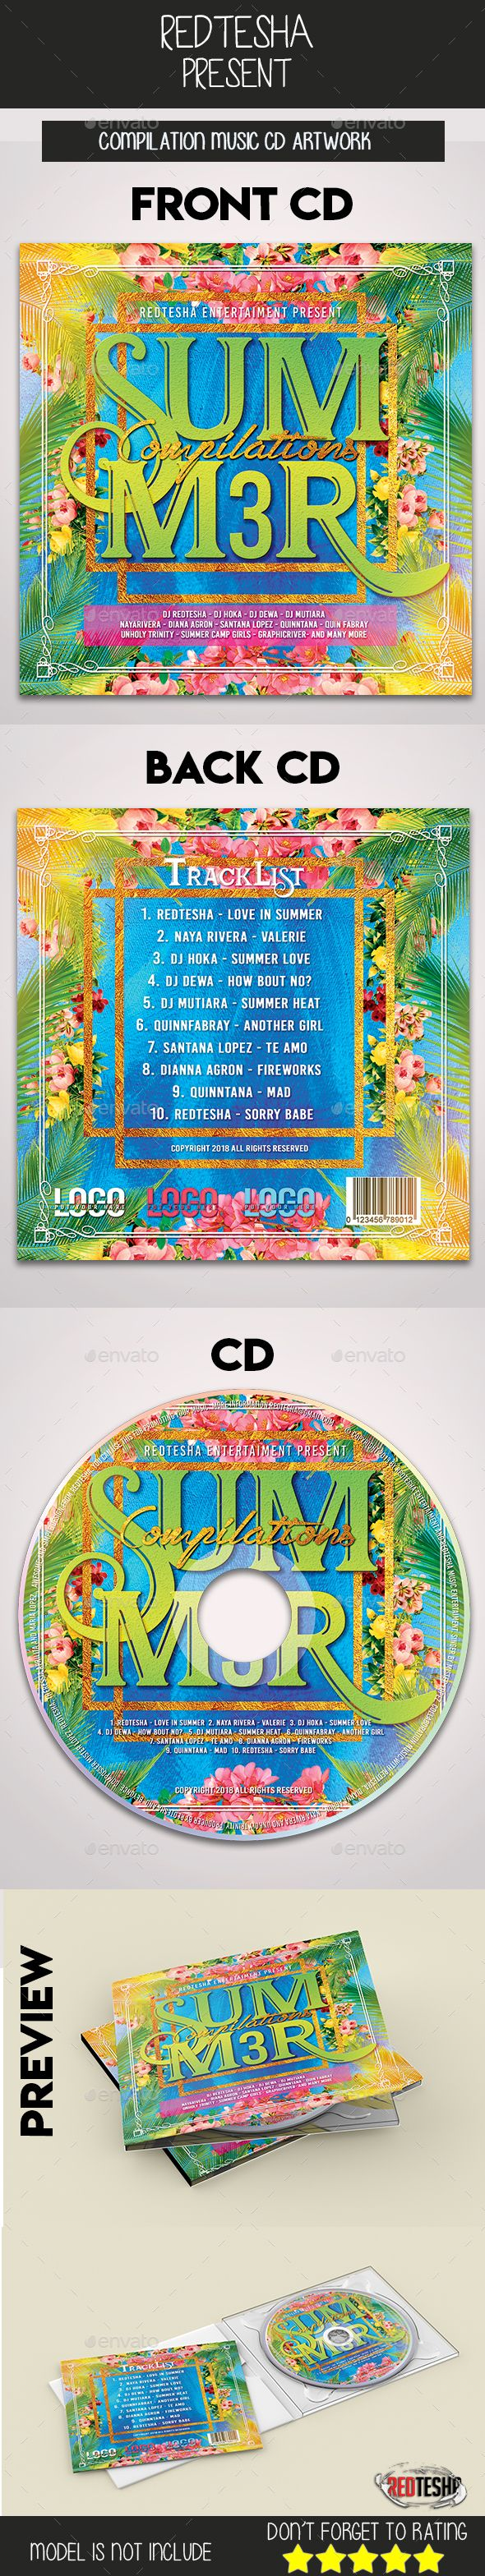 now available perfect cd artwork template for promoting your music